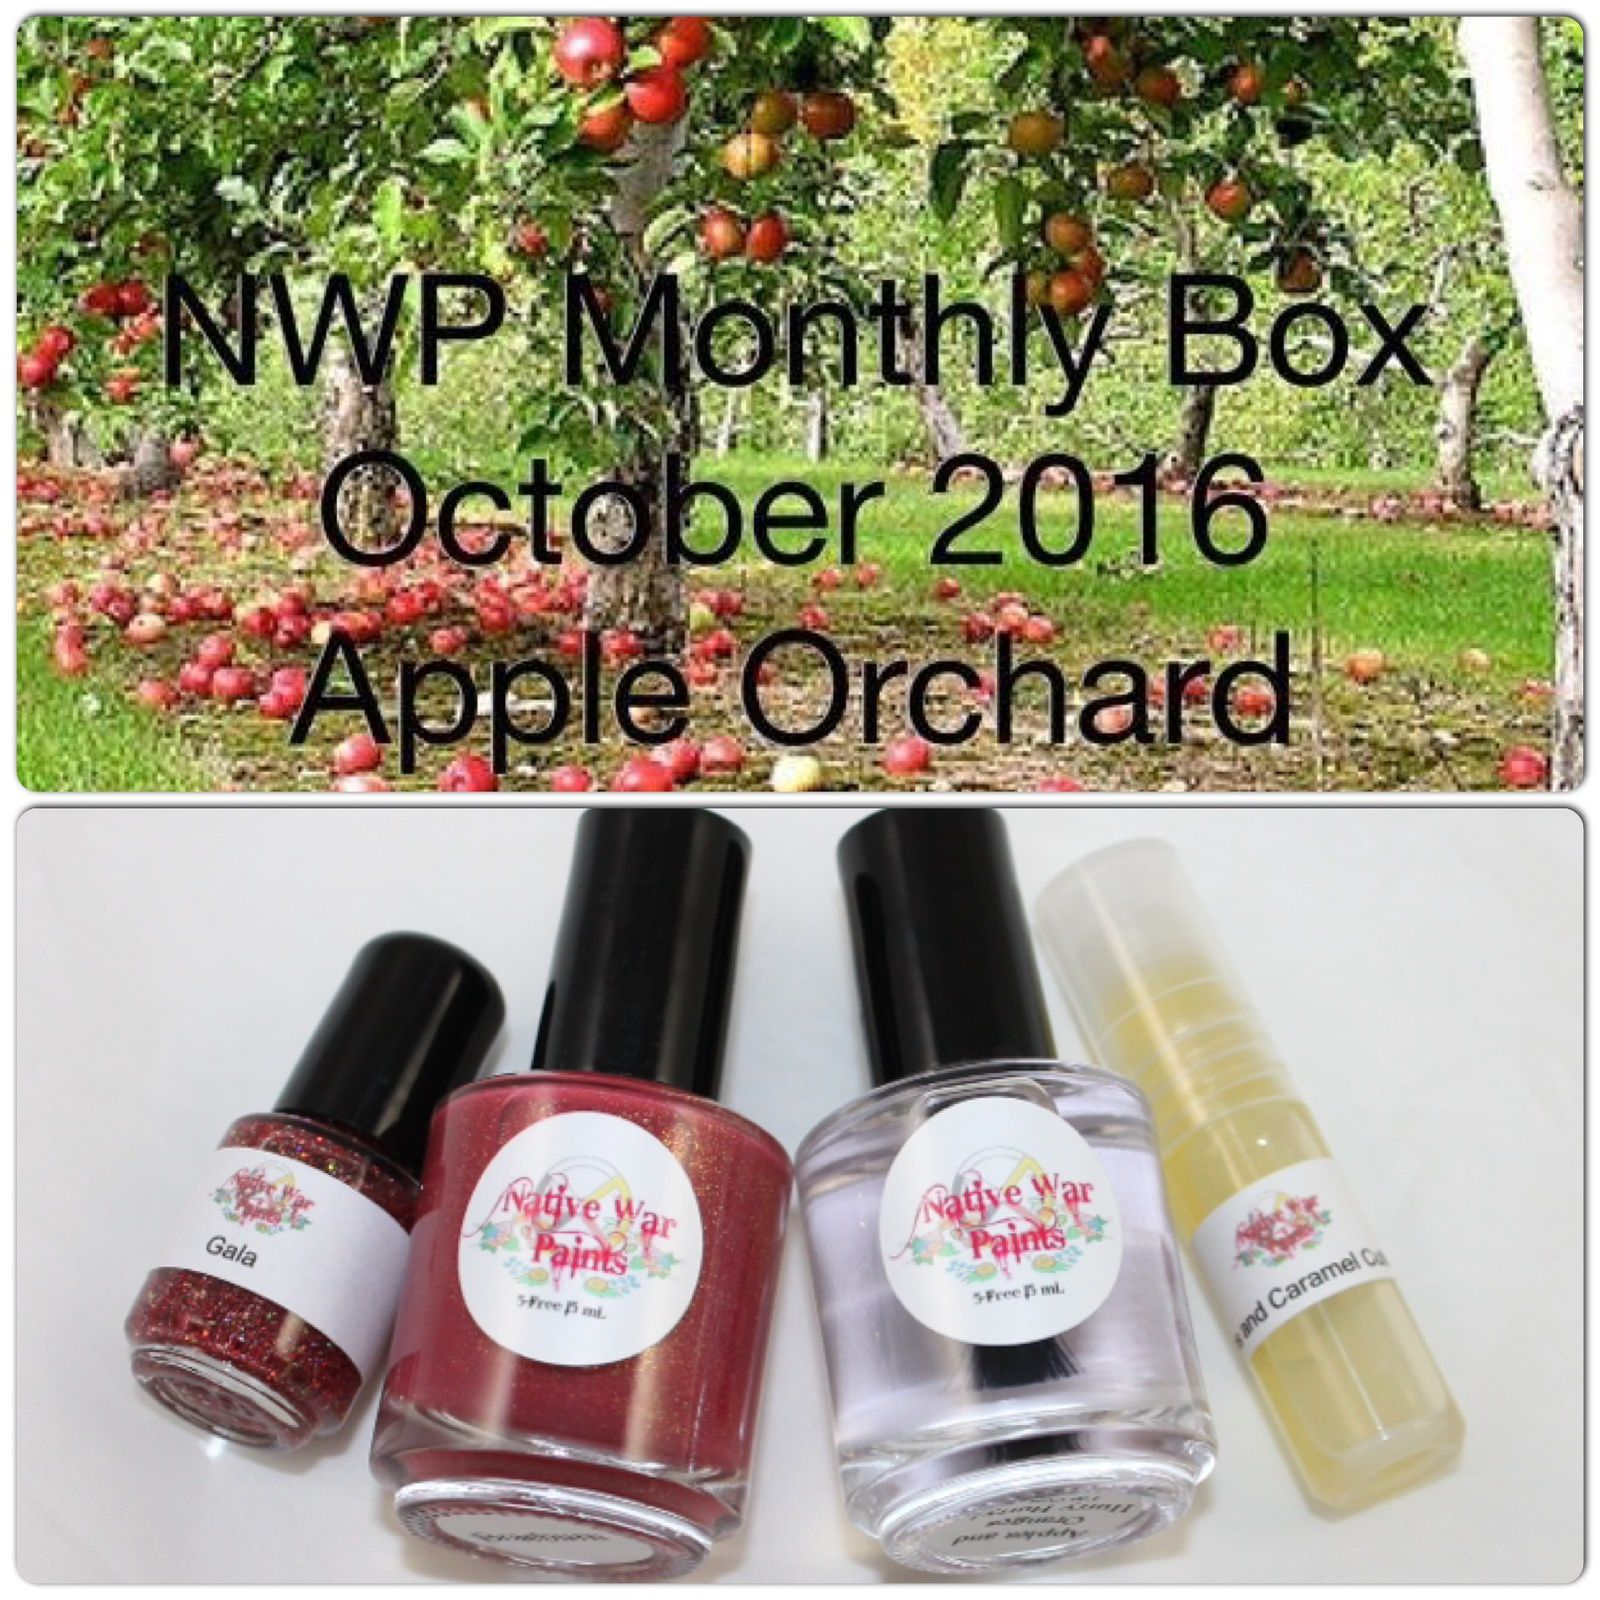 Native War Paints Monthly Box - October 2016 - Apple Orchard